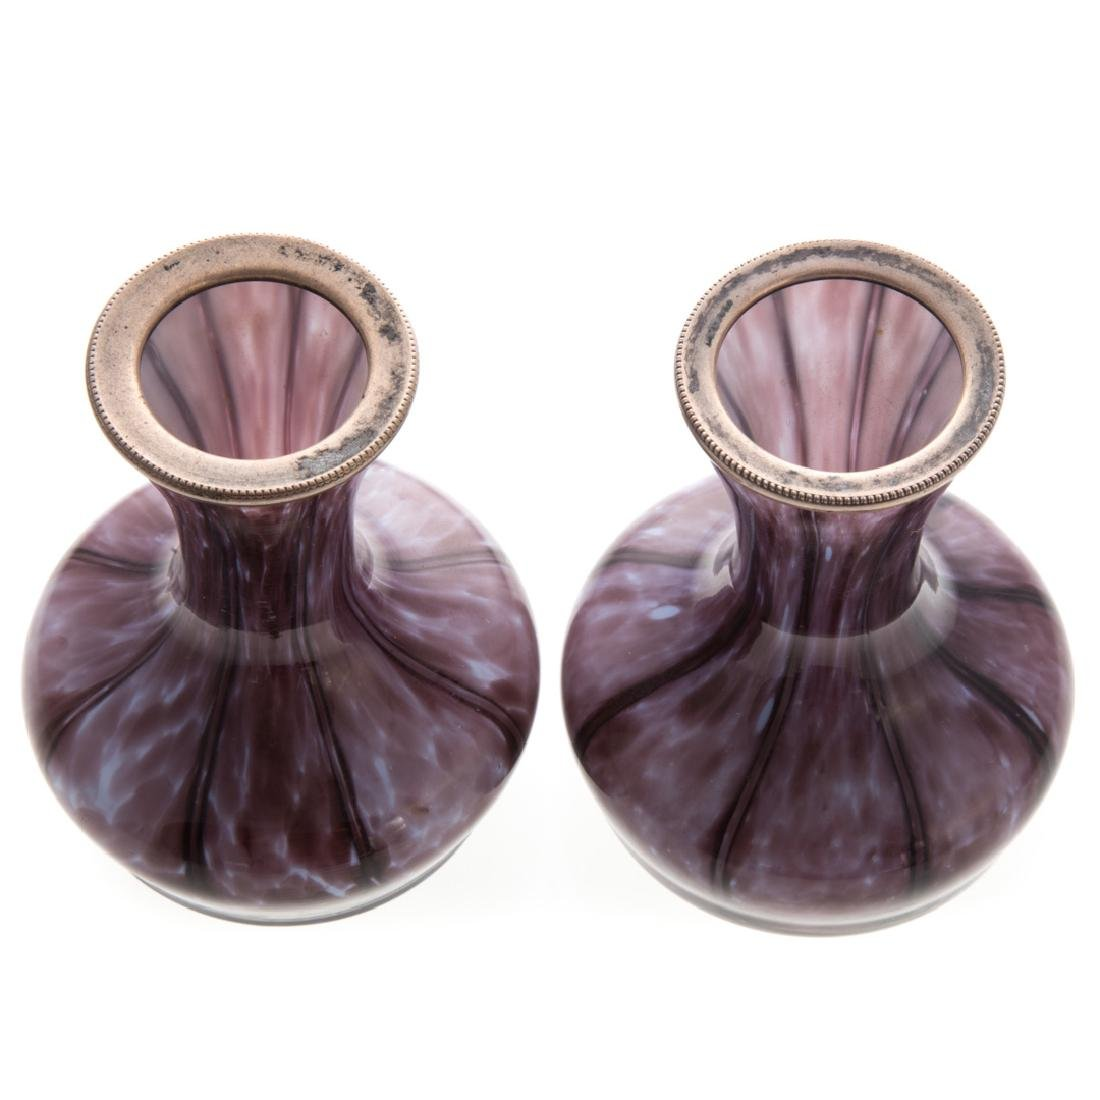 Pair amethyst cased glass silver-mounted vases - 3